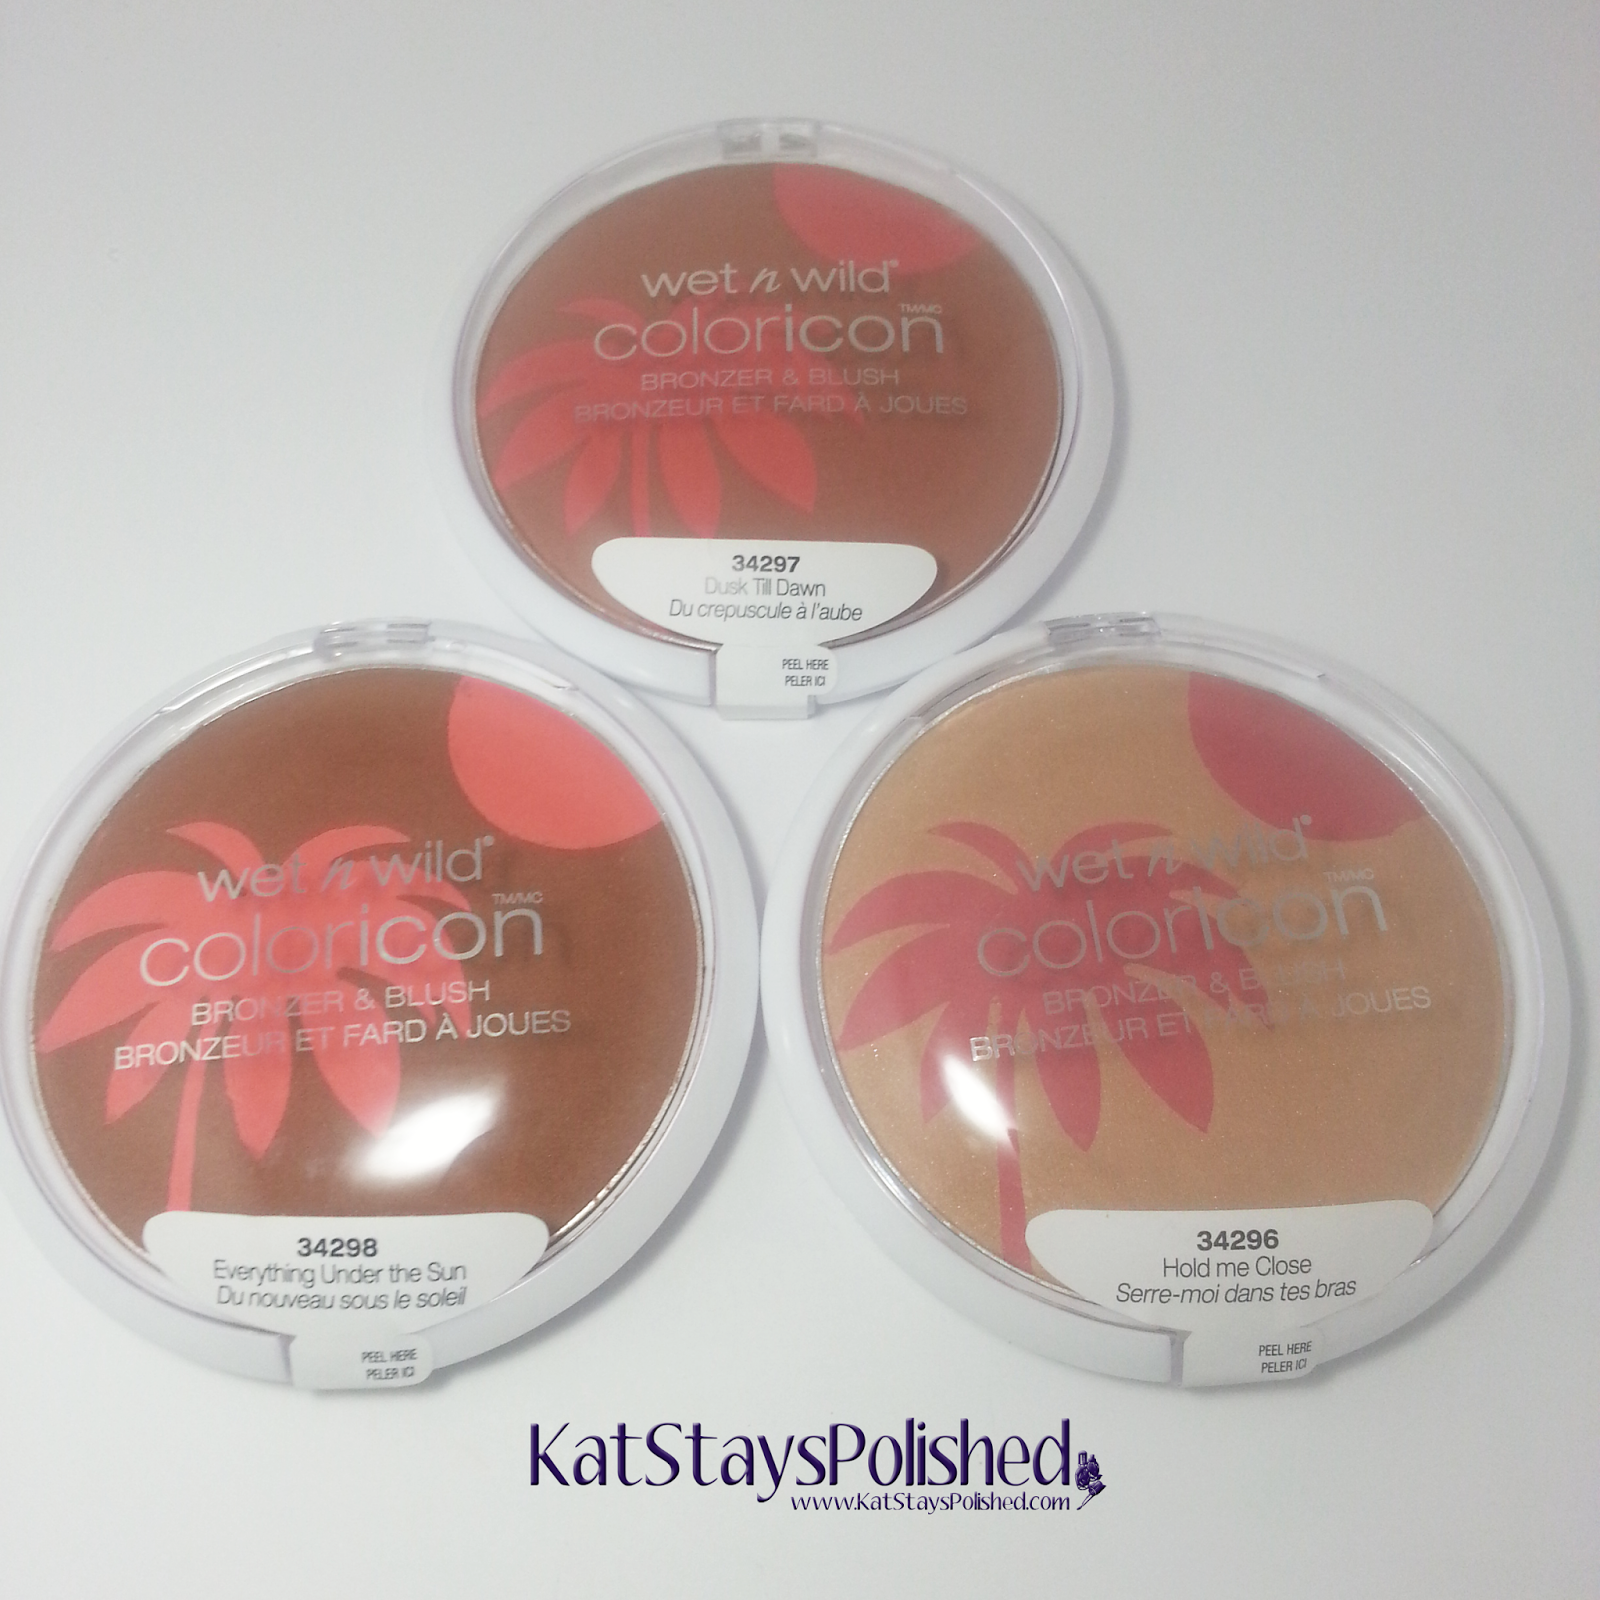 Wet n Wild ColorIcon Bronzer & Blush - Summer 2014 | Kat Stays Polished